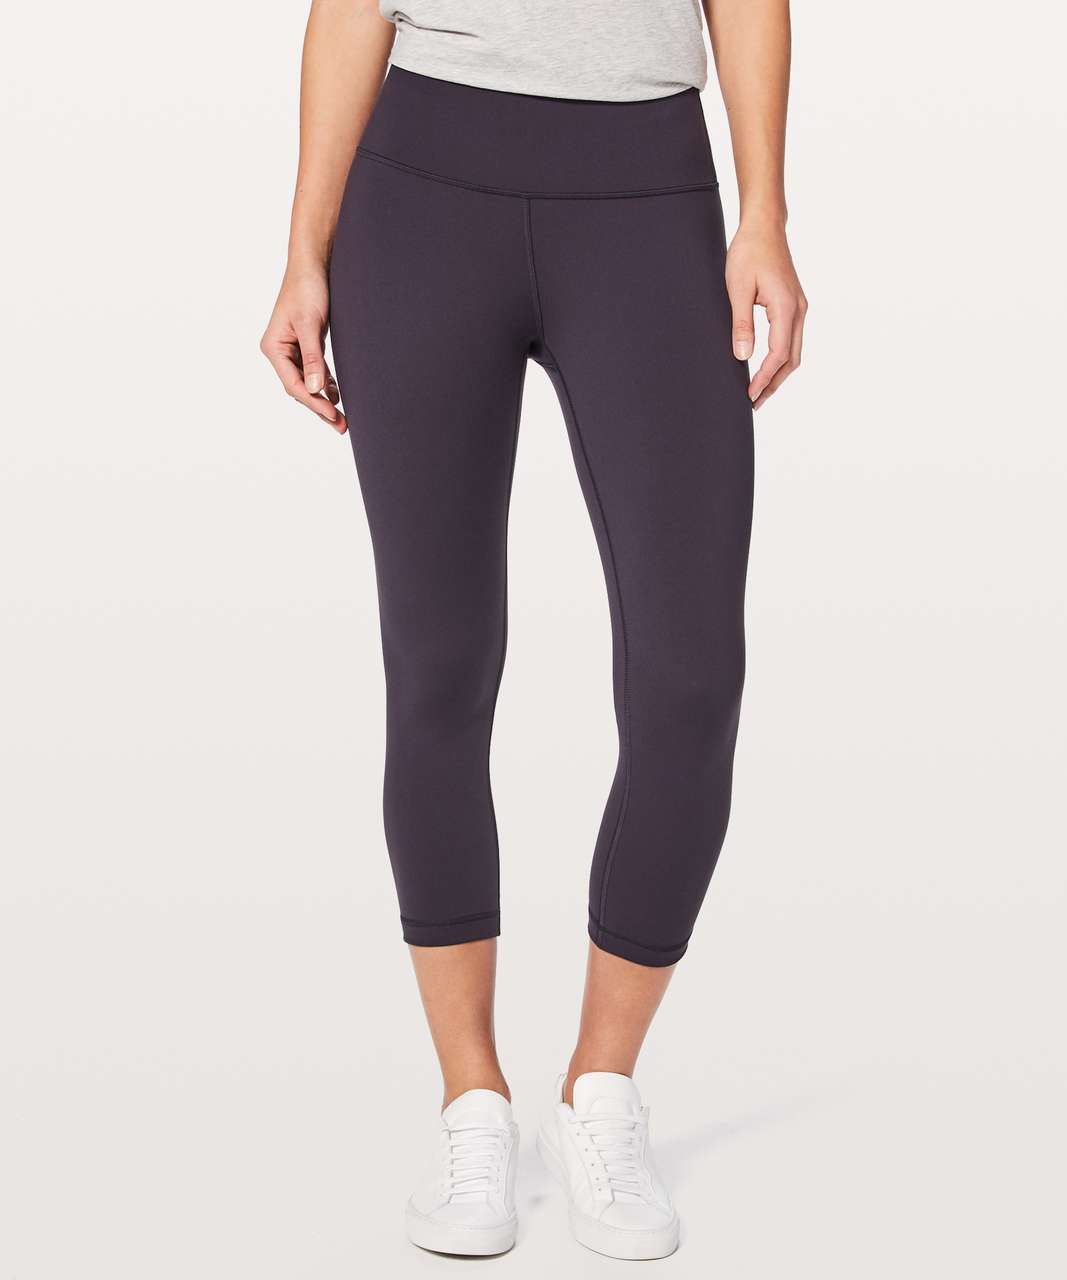 "Lululemon Wunder Under Crop (Hi-Rise) *Full-On Luon 21"" - Boysenberry"